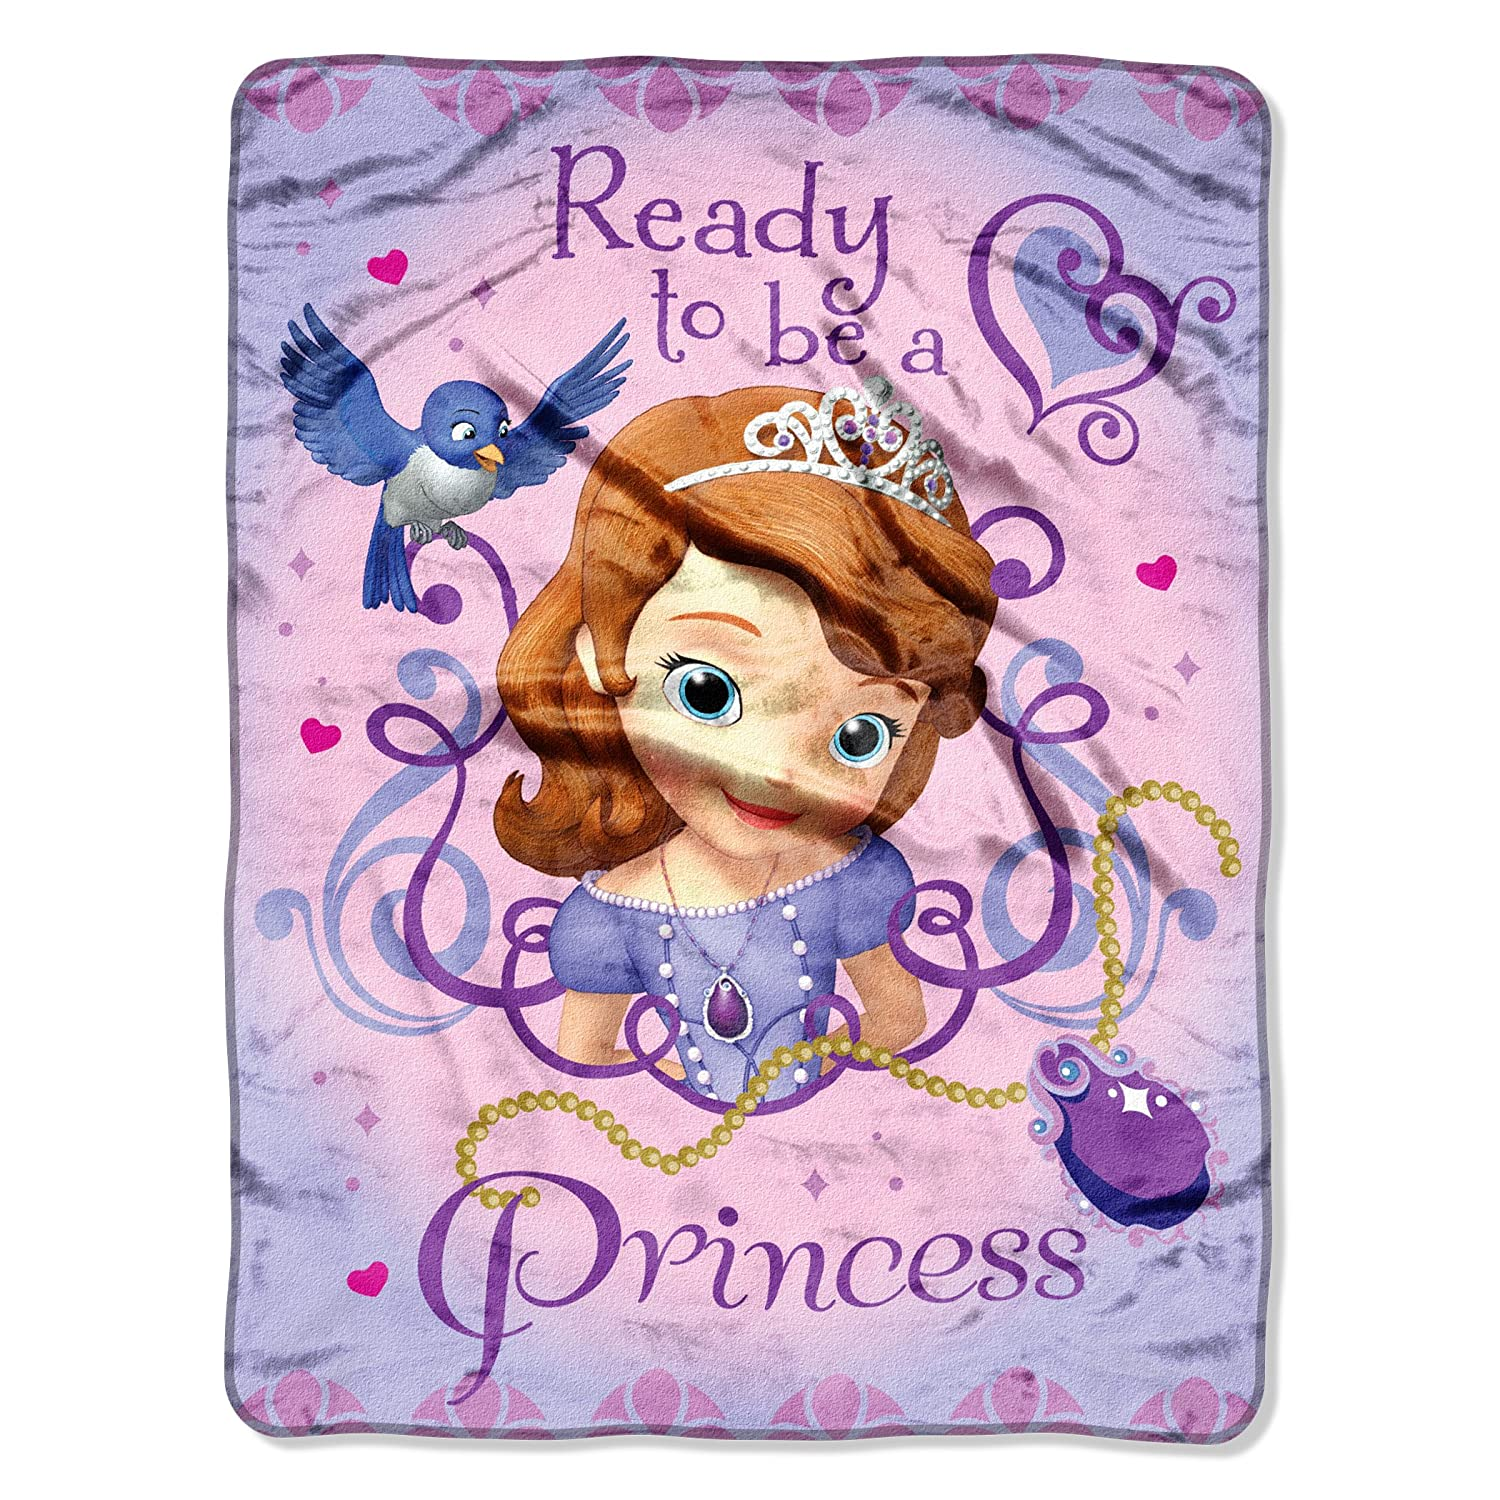 Disney's Sofia The First, Ready To Be A Princess Micro Raschel Throw Blanket, 46 x 60, Multi Color Disney' s Sofia The First 46 x 60 1DSF059000001RET